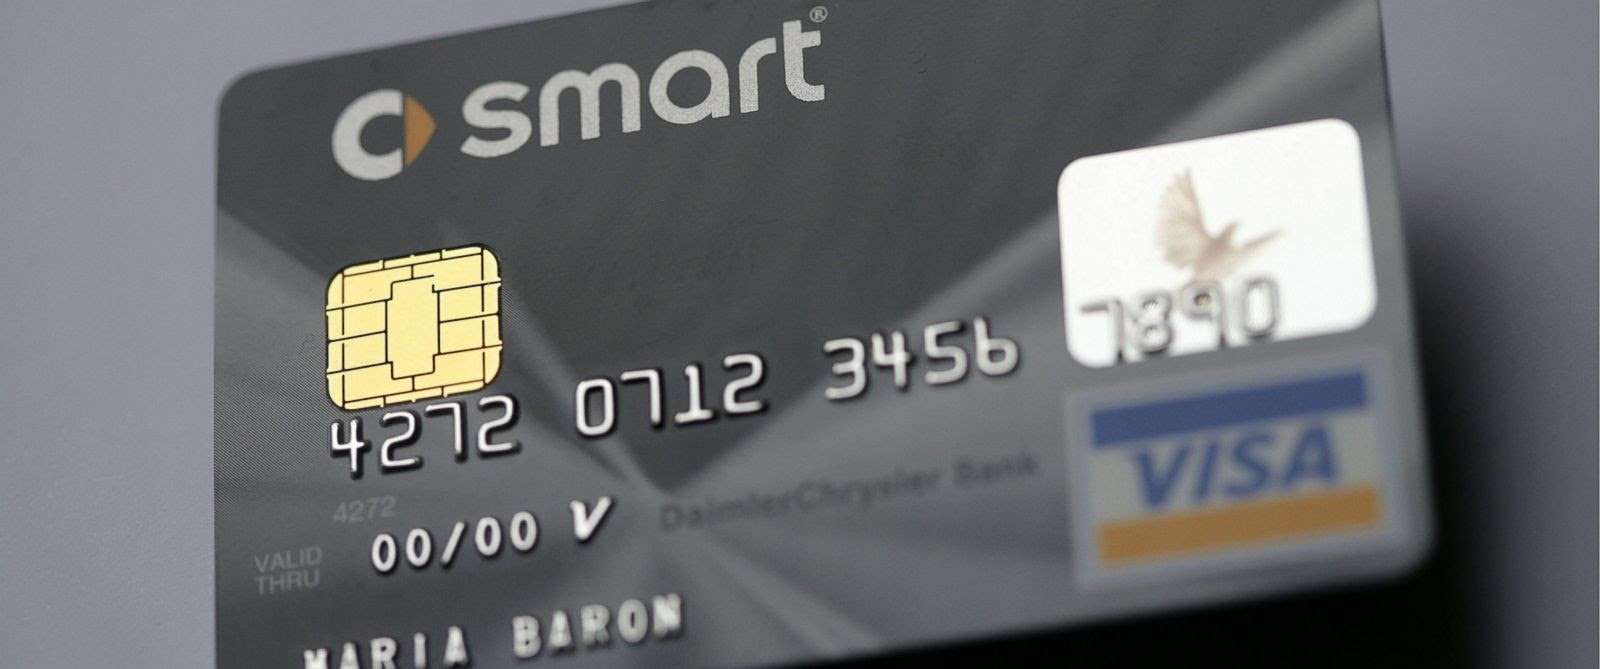 Those New Credit Card Chips Known as EMV Won't Defeat the ...